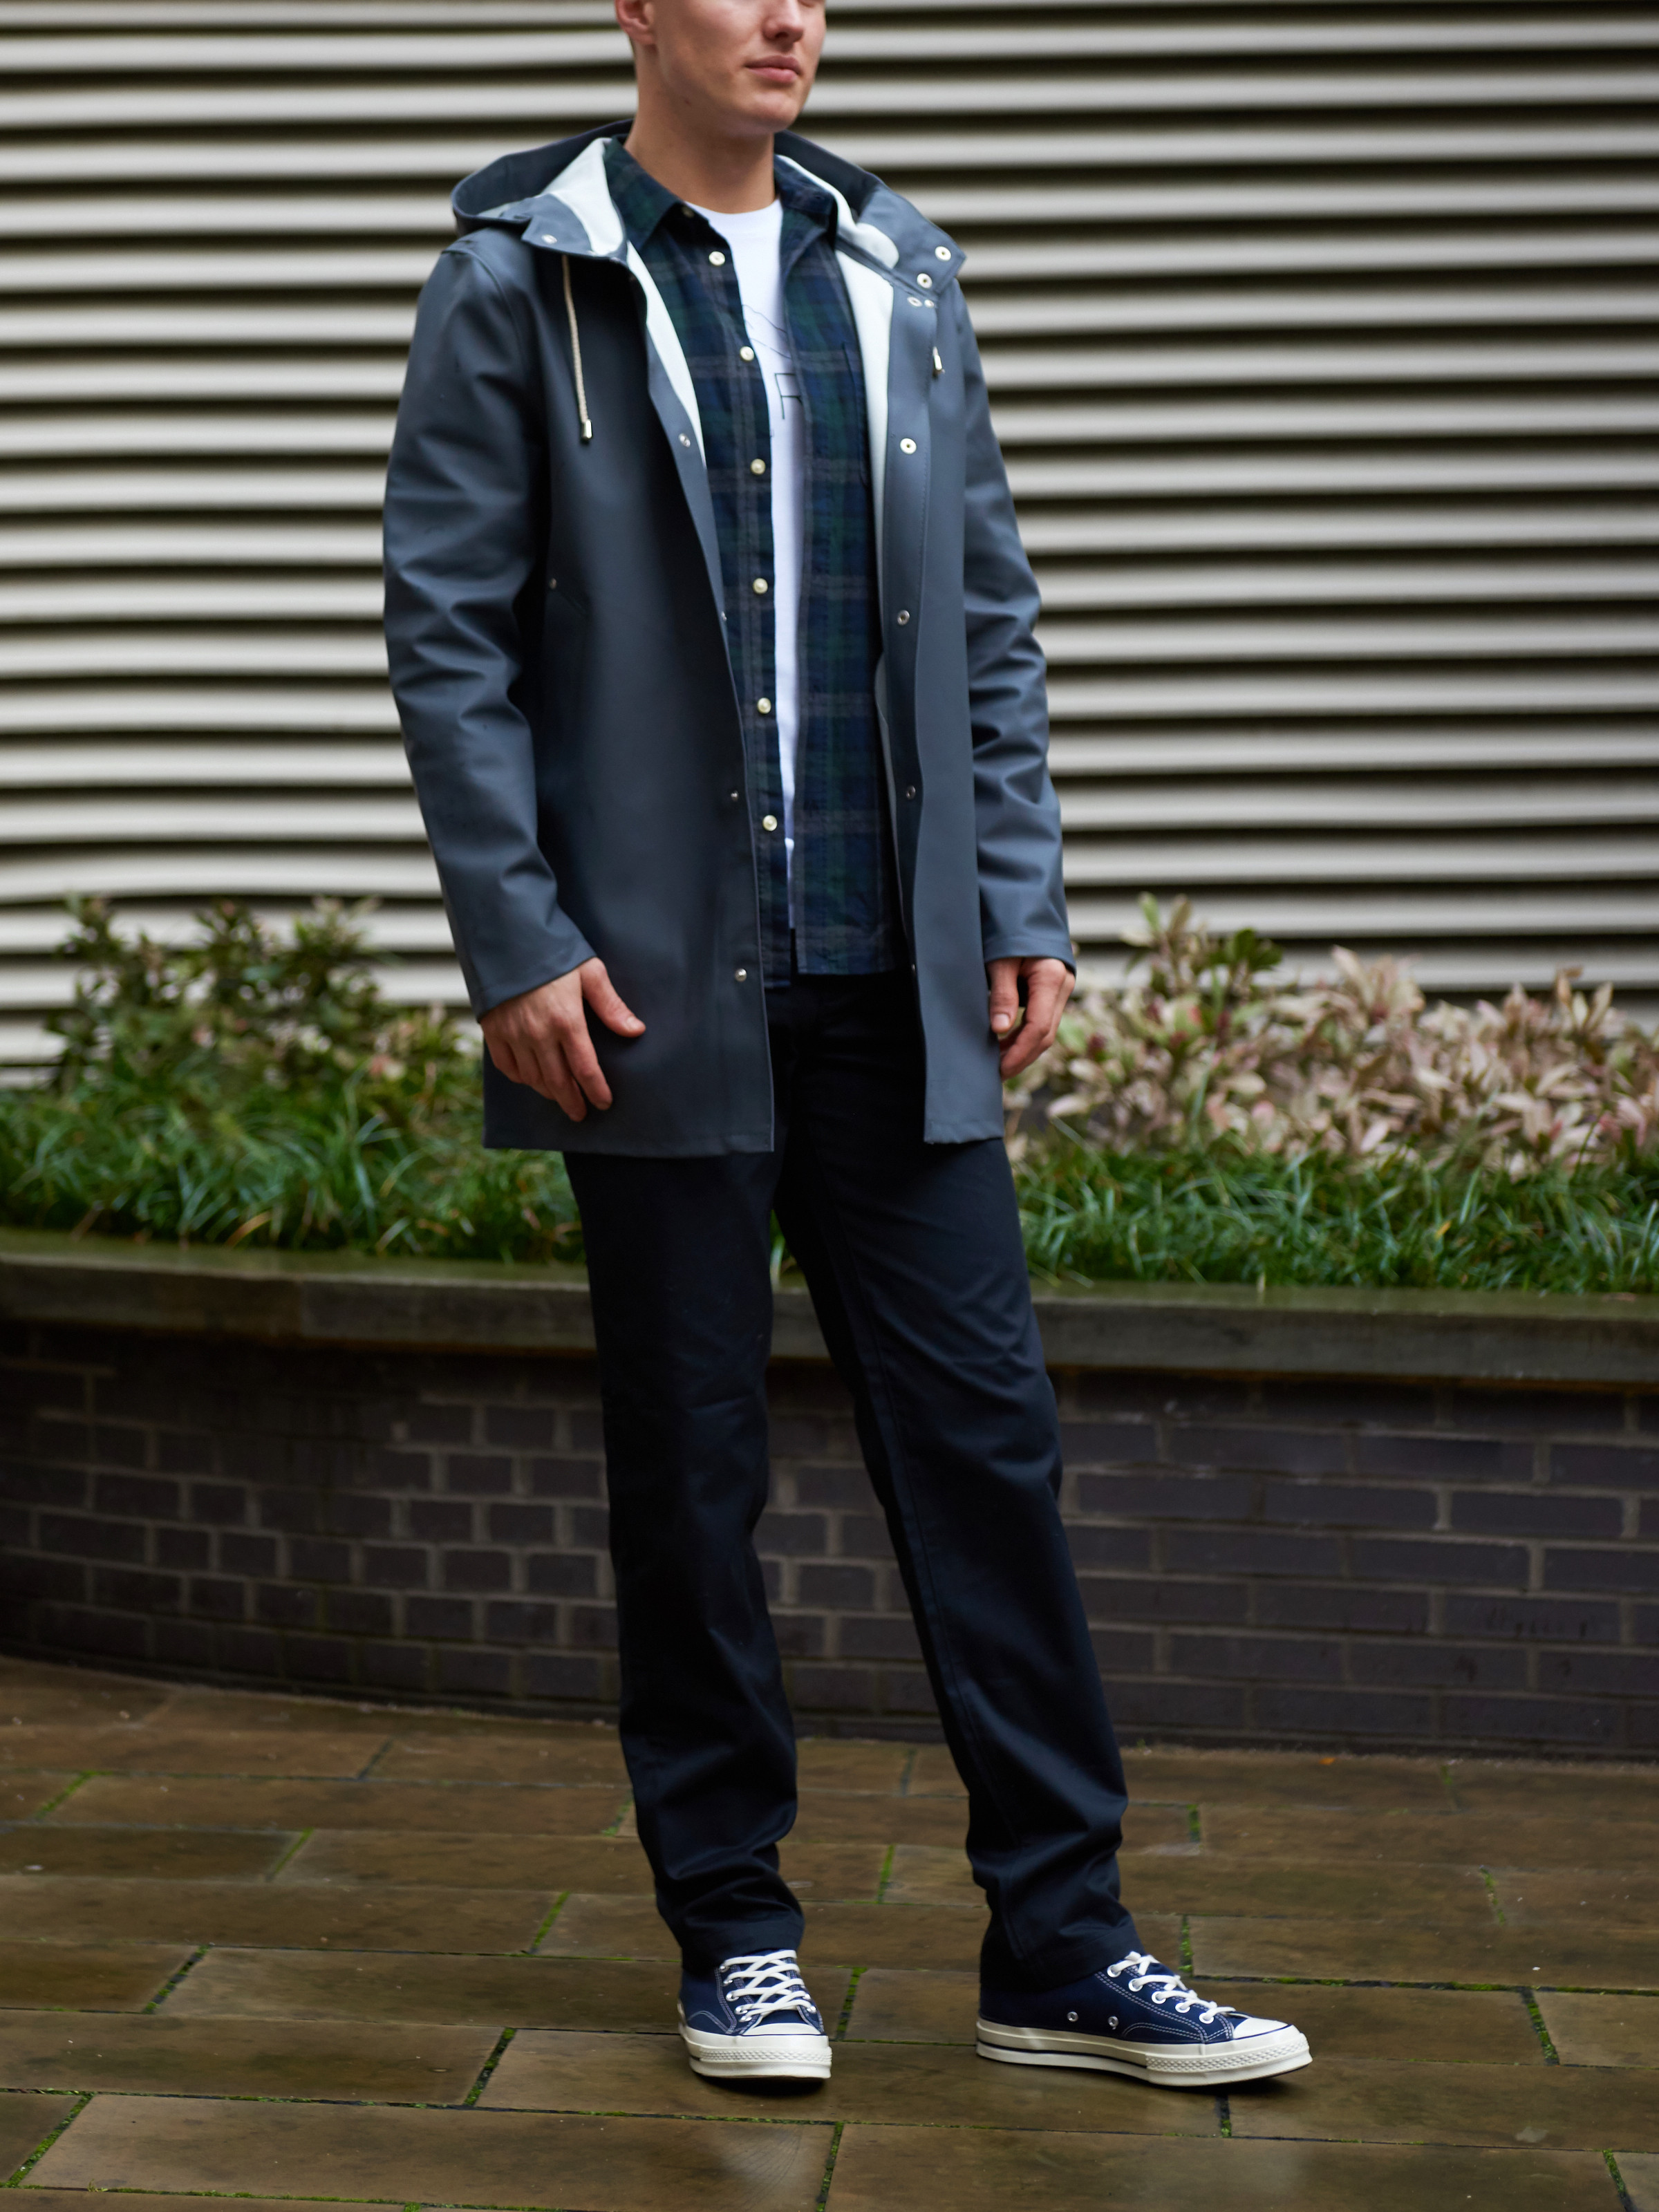 Men's outfit idea for 2021 with navy raincoat, neutral plaid shirt, graphic printed crew neck t-shirt, navy chinos, converse. Suitable for spring, fall and winter.